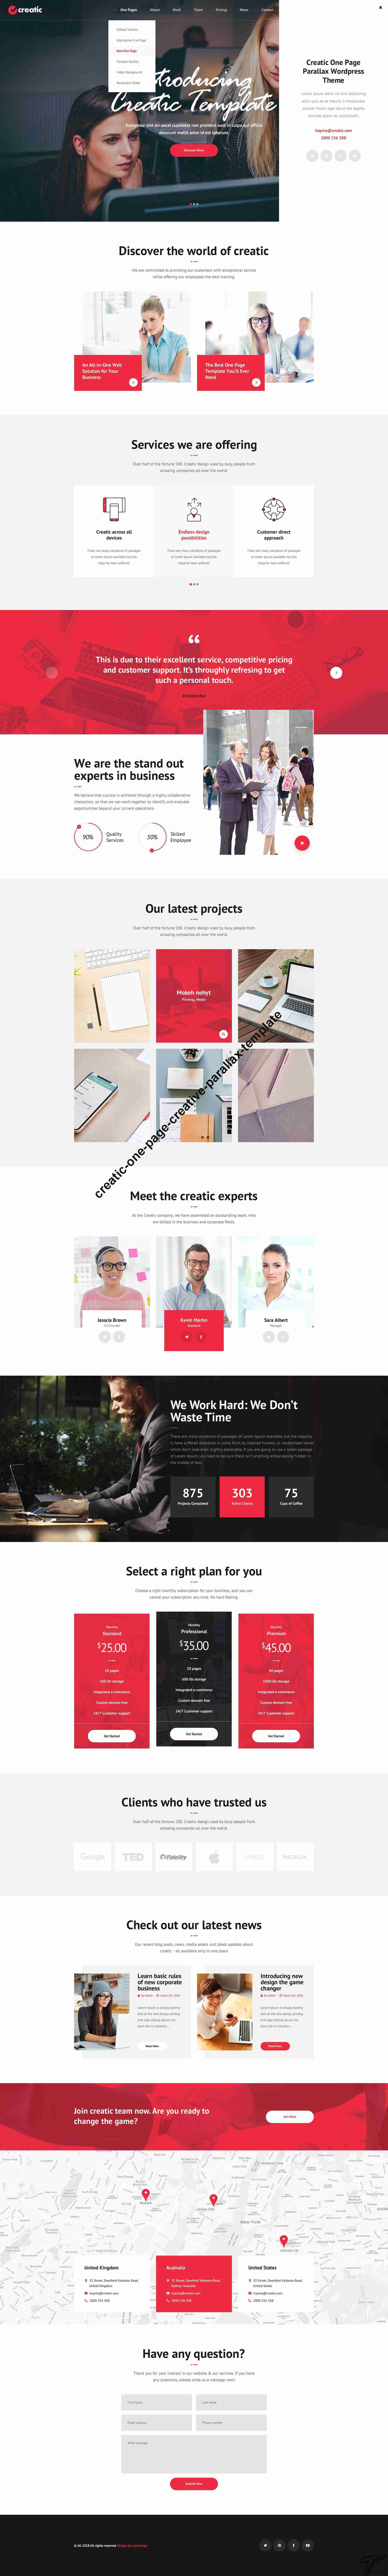 https://images.besthemes.com/images/h1_creatic-one-page-creative-parallax-template7-_-244672768/previews/07_Home.jpg